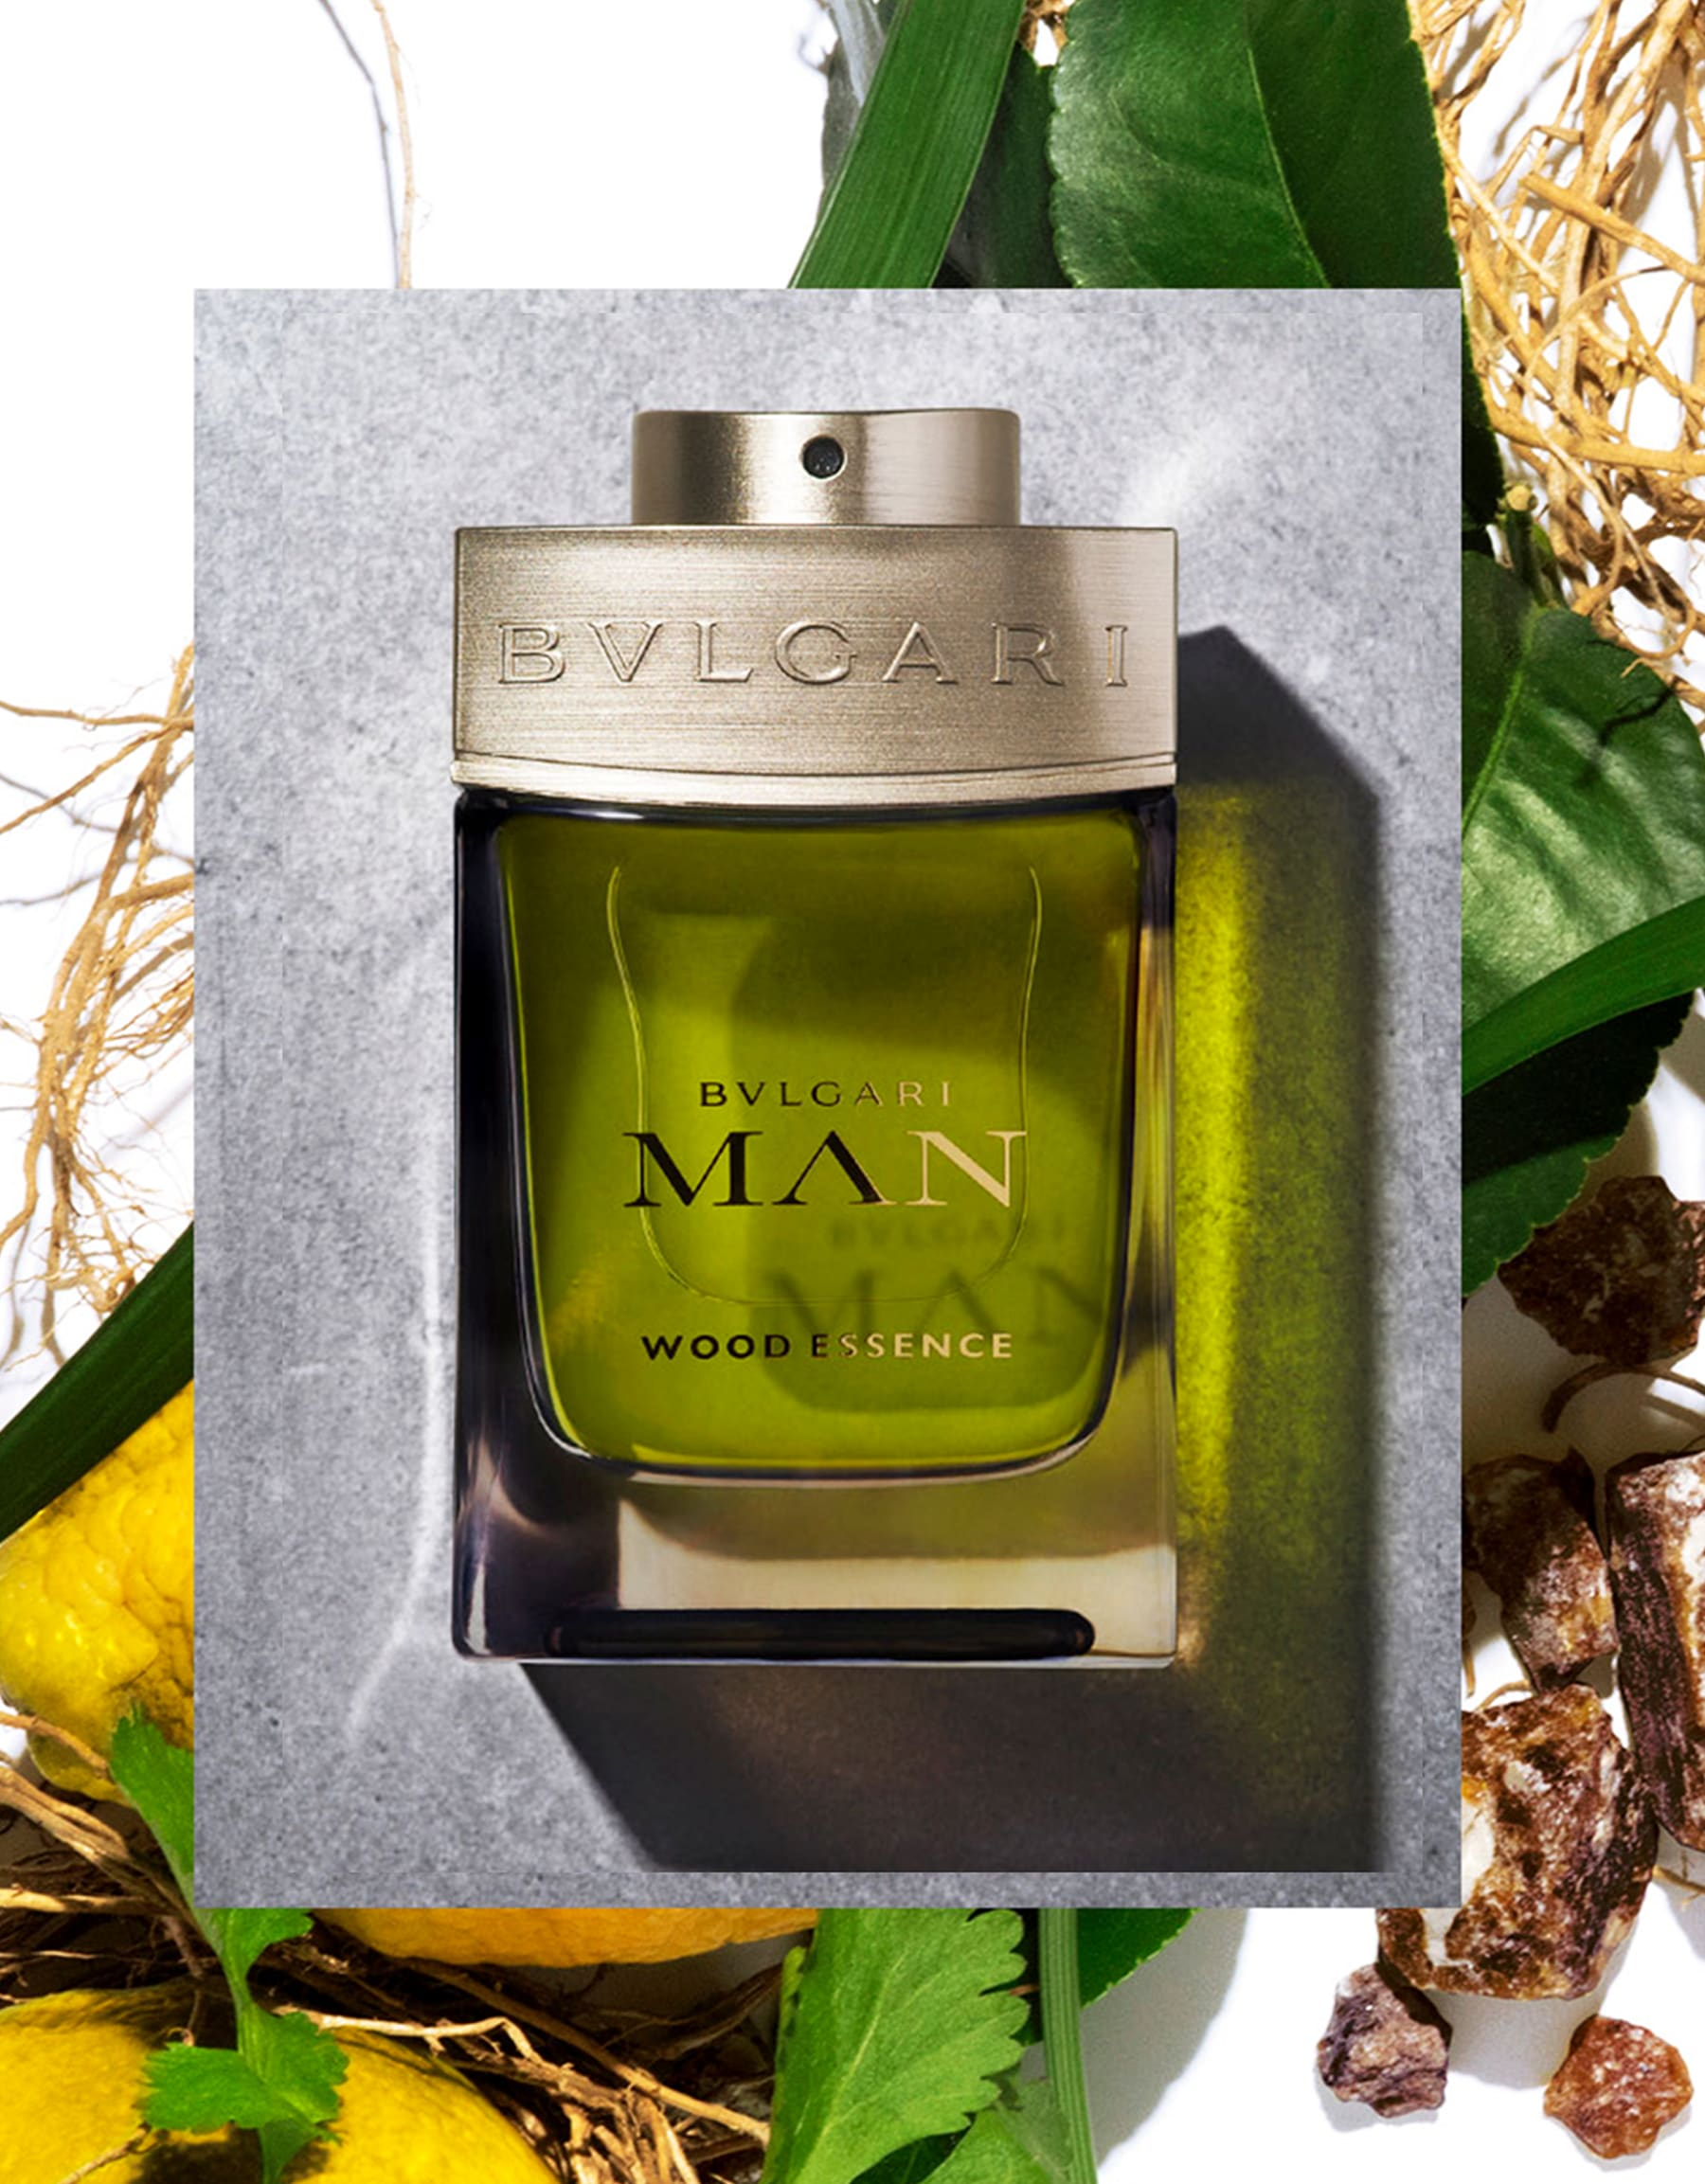 An energizing woody eau de parfume inspired by the life force found in nature. 46100 image 4